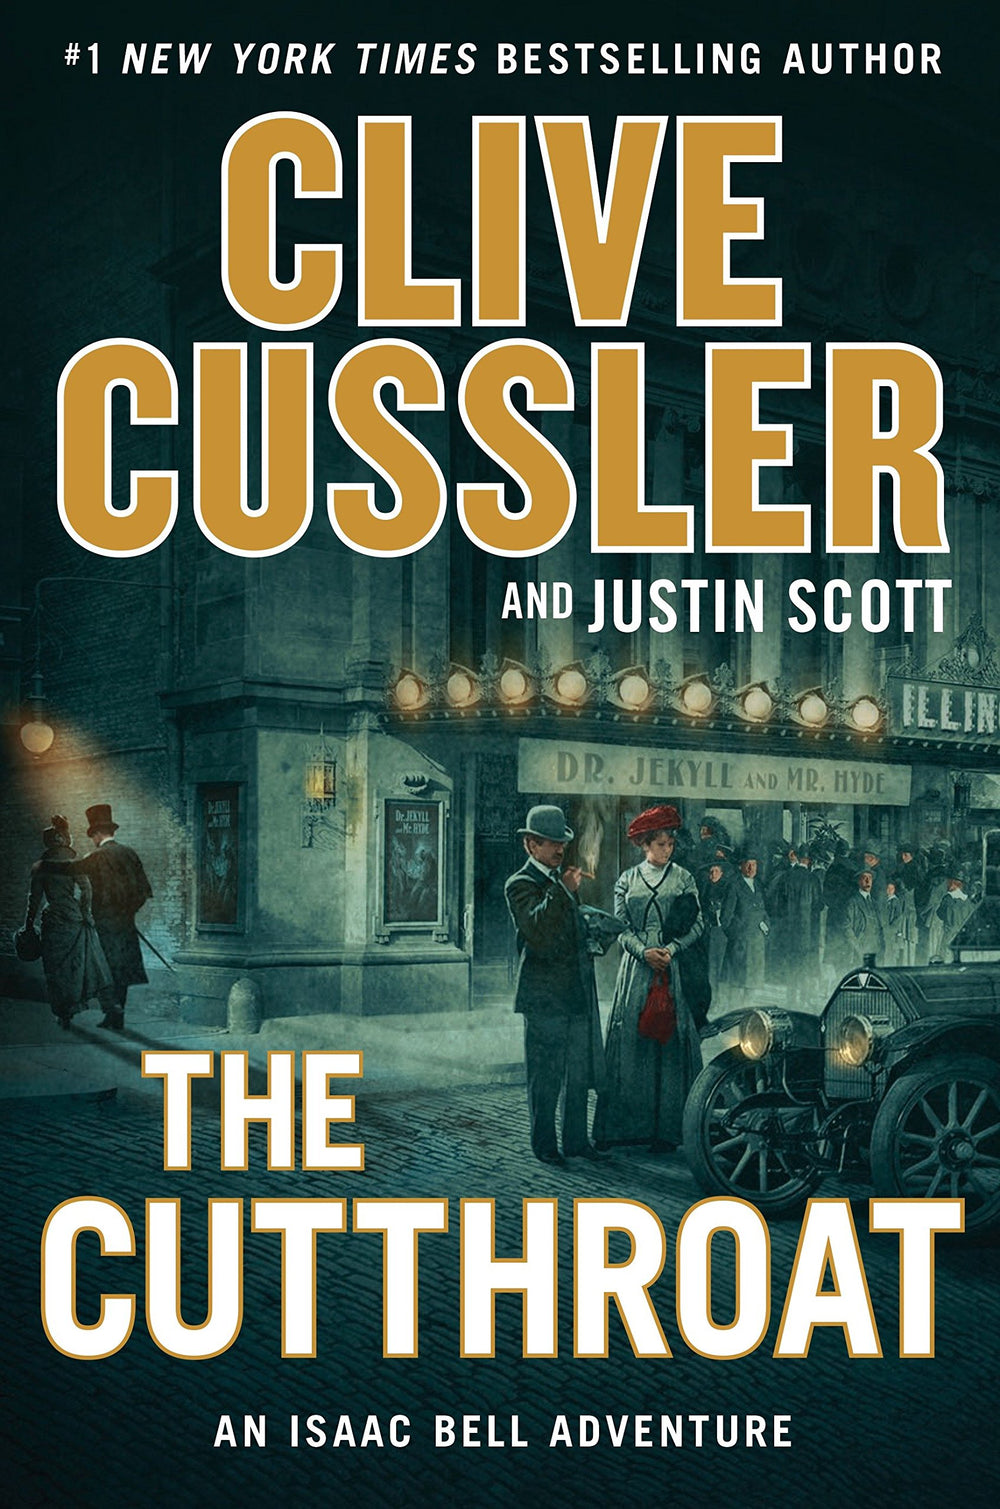 The Cutthroat (Isaac Bell 10) by Clive Cussler